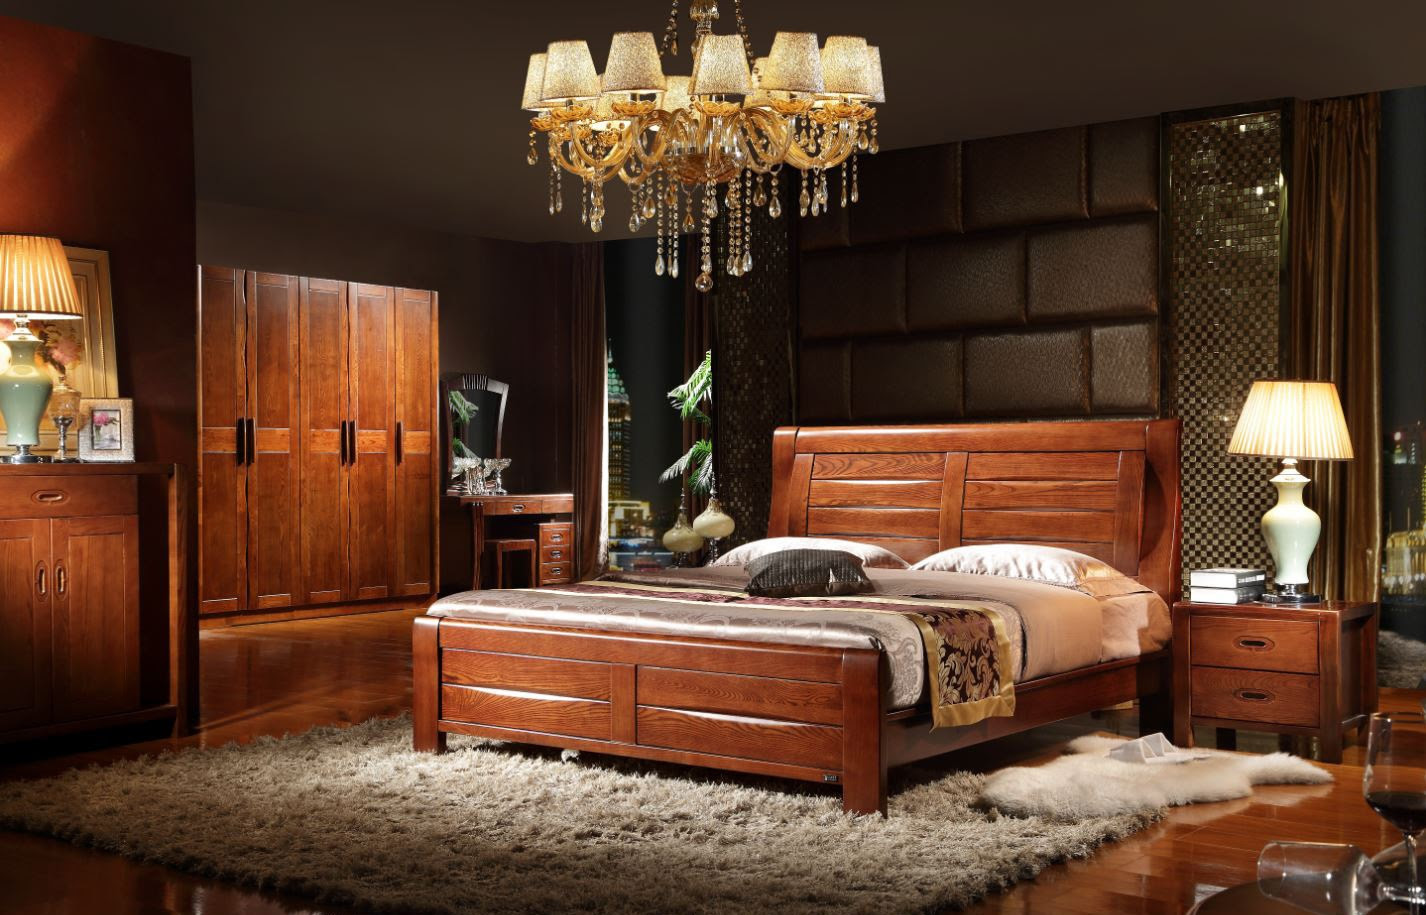 China likely to dump bedroom furniture if rules are ...